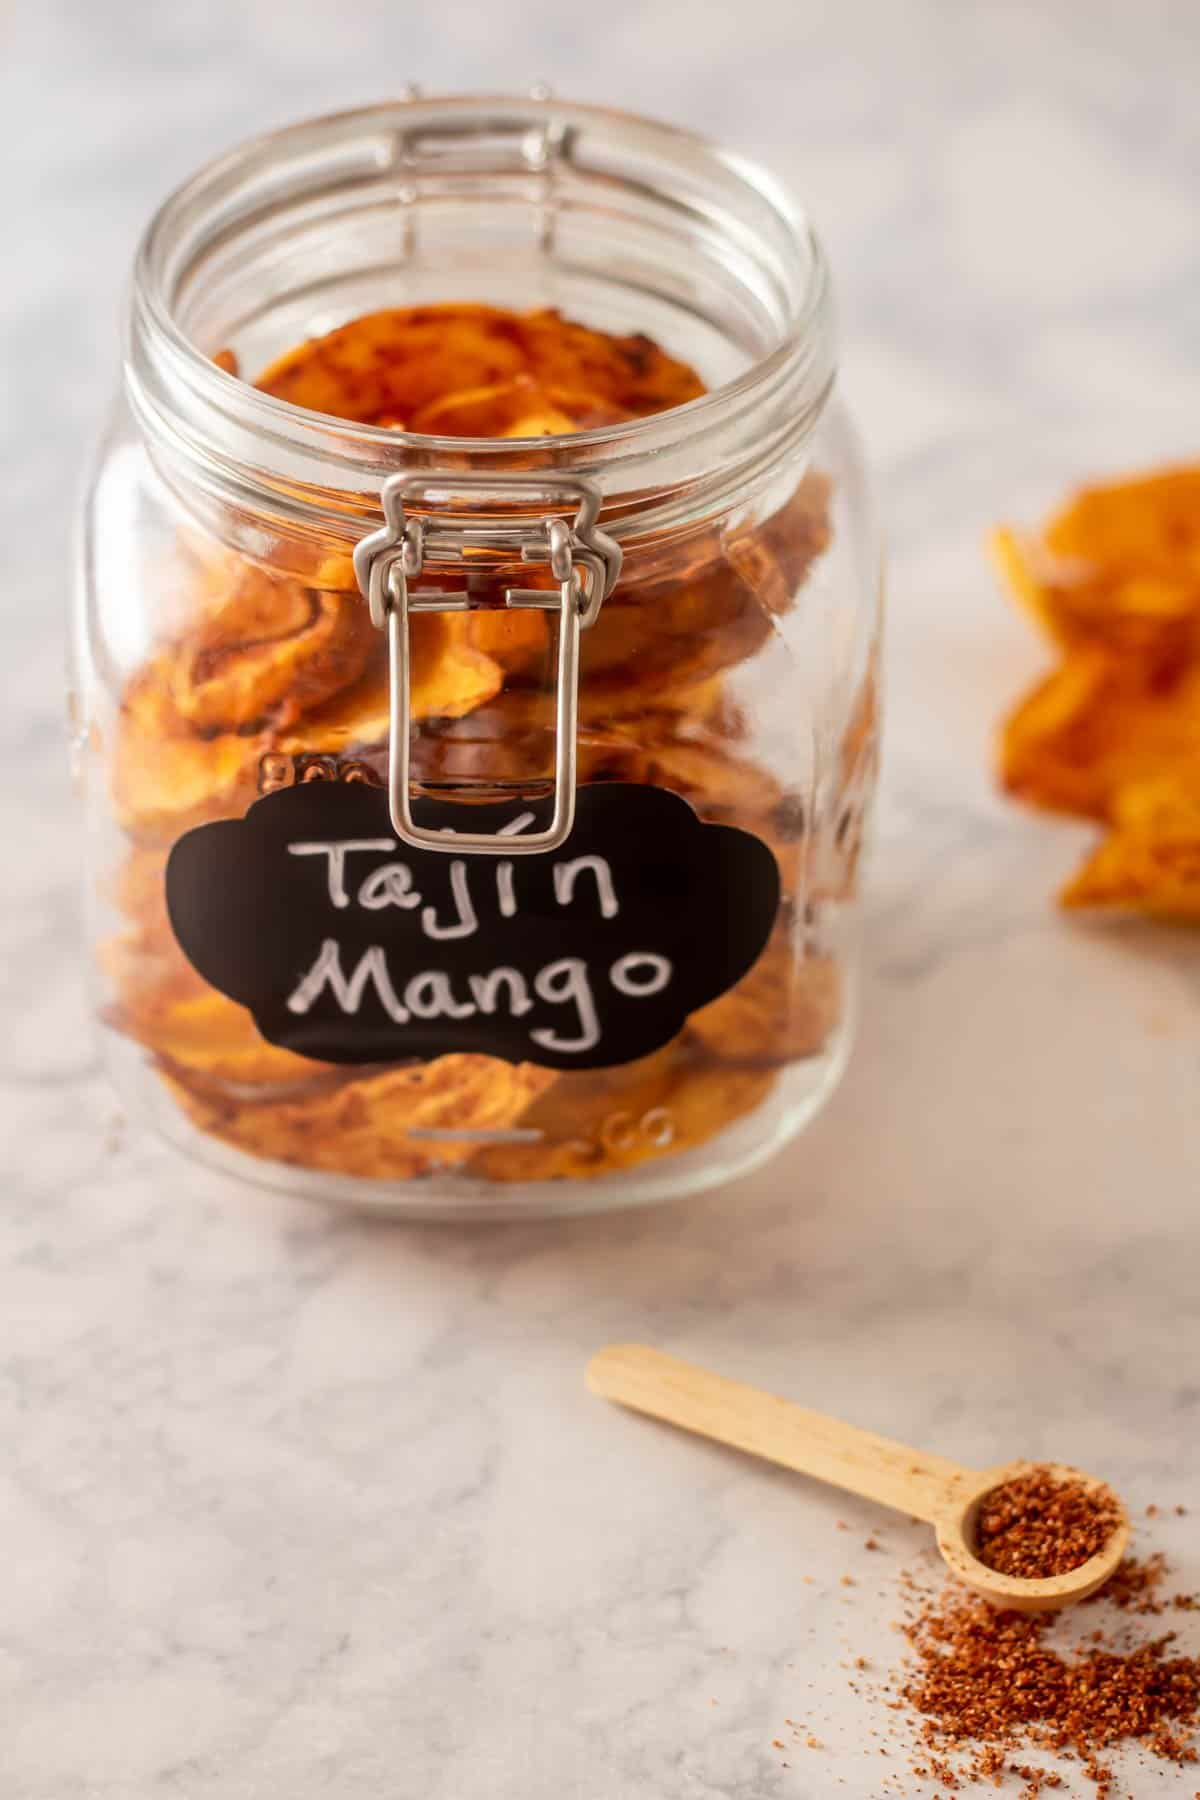 A jar of dehydrated tajin mangoes with a chalkboard label on a marble surface.